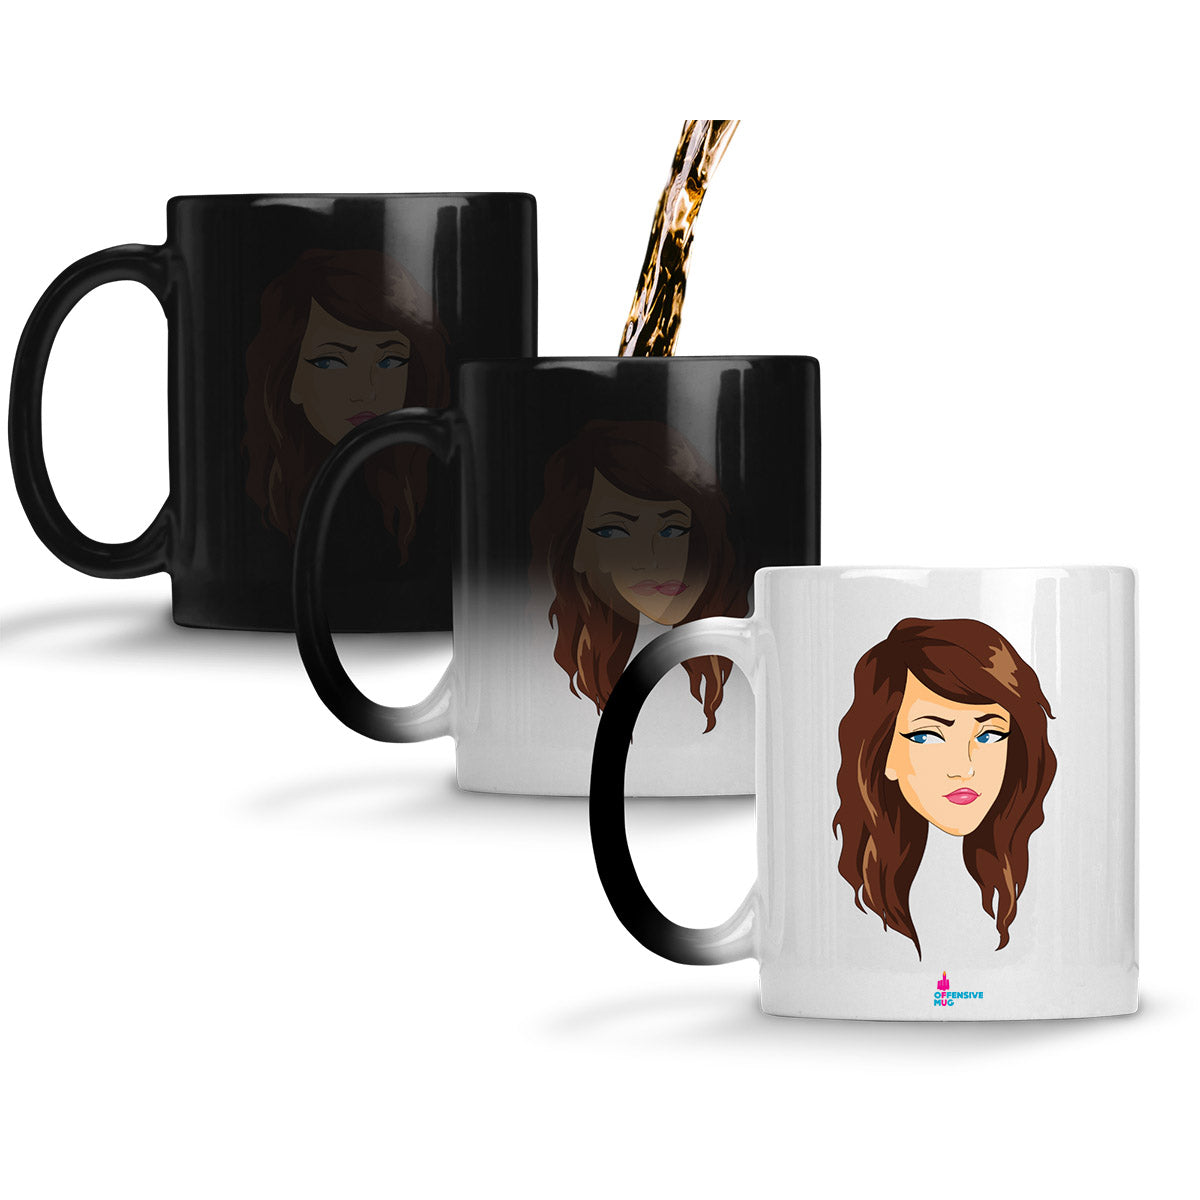 Becky Magic Mug - Offensive Mug